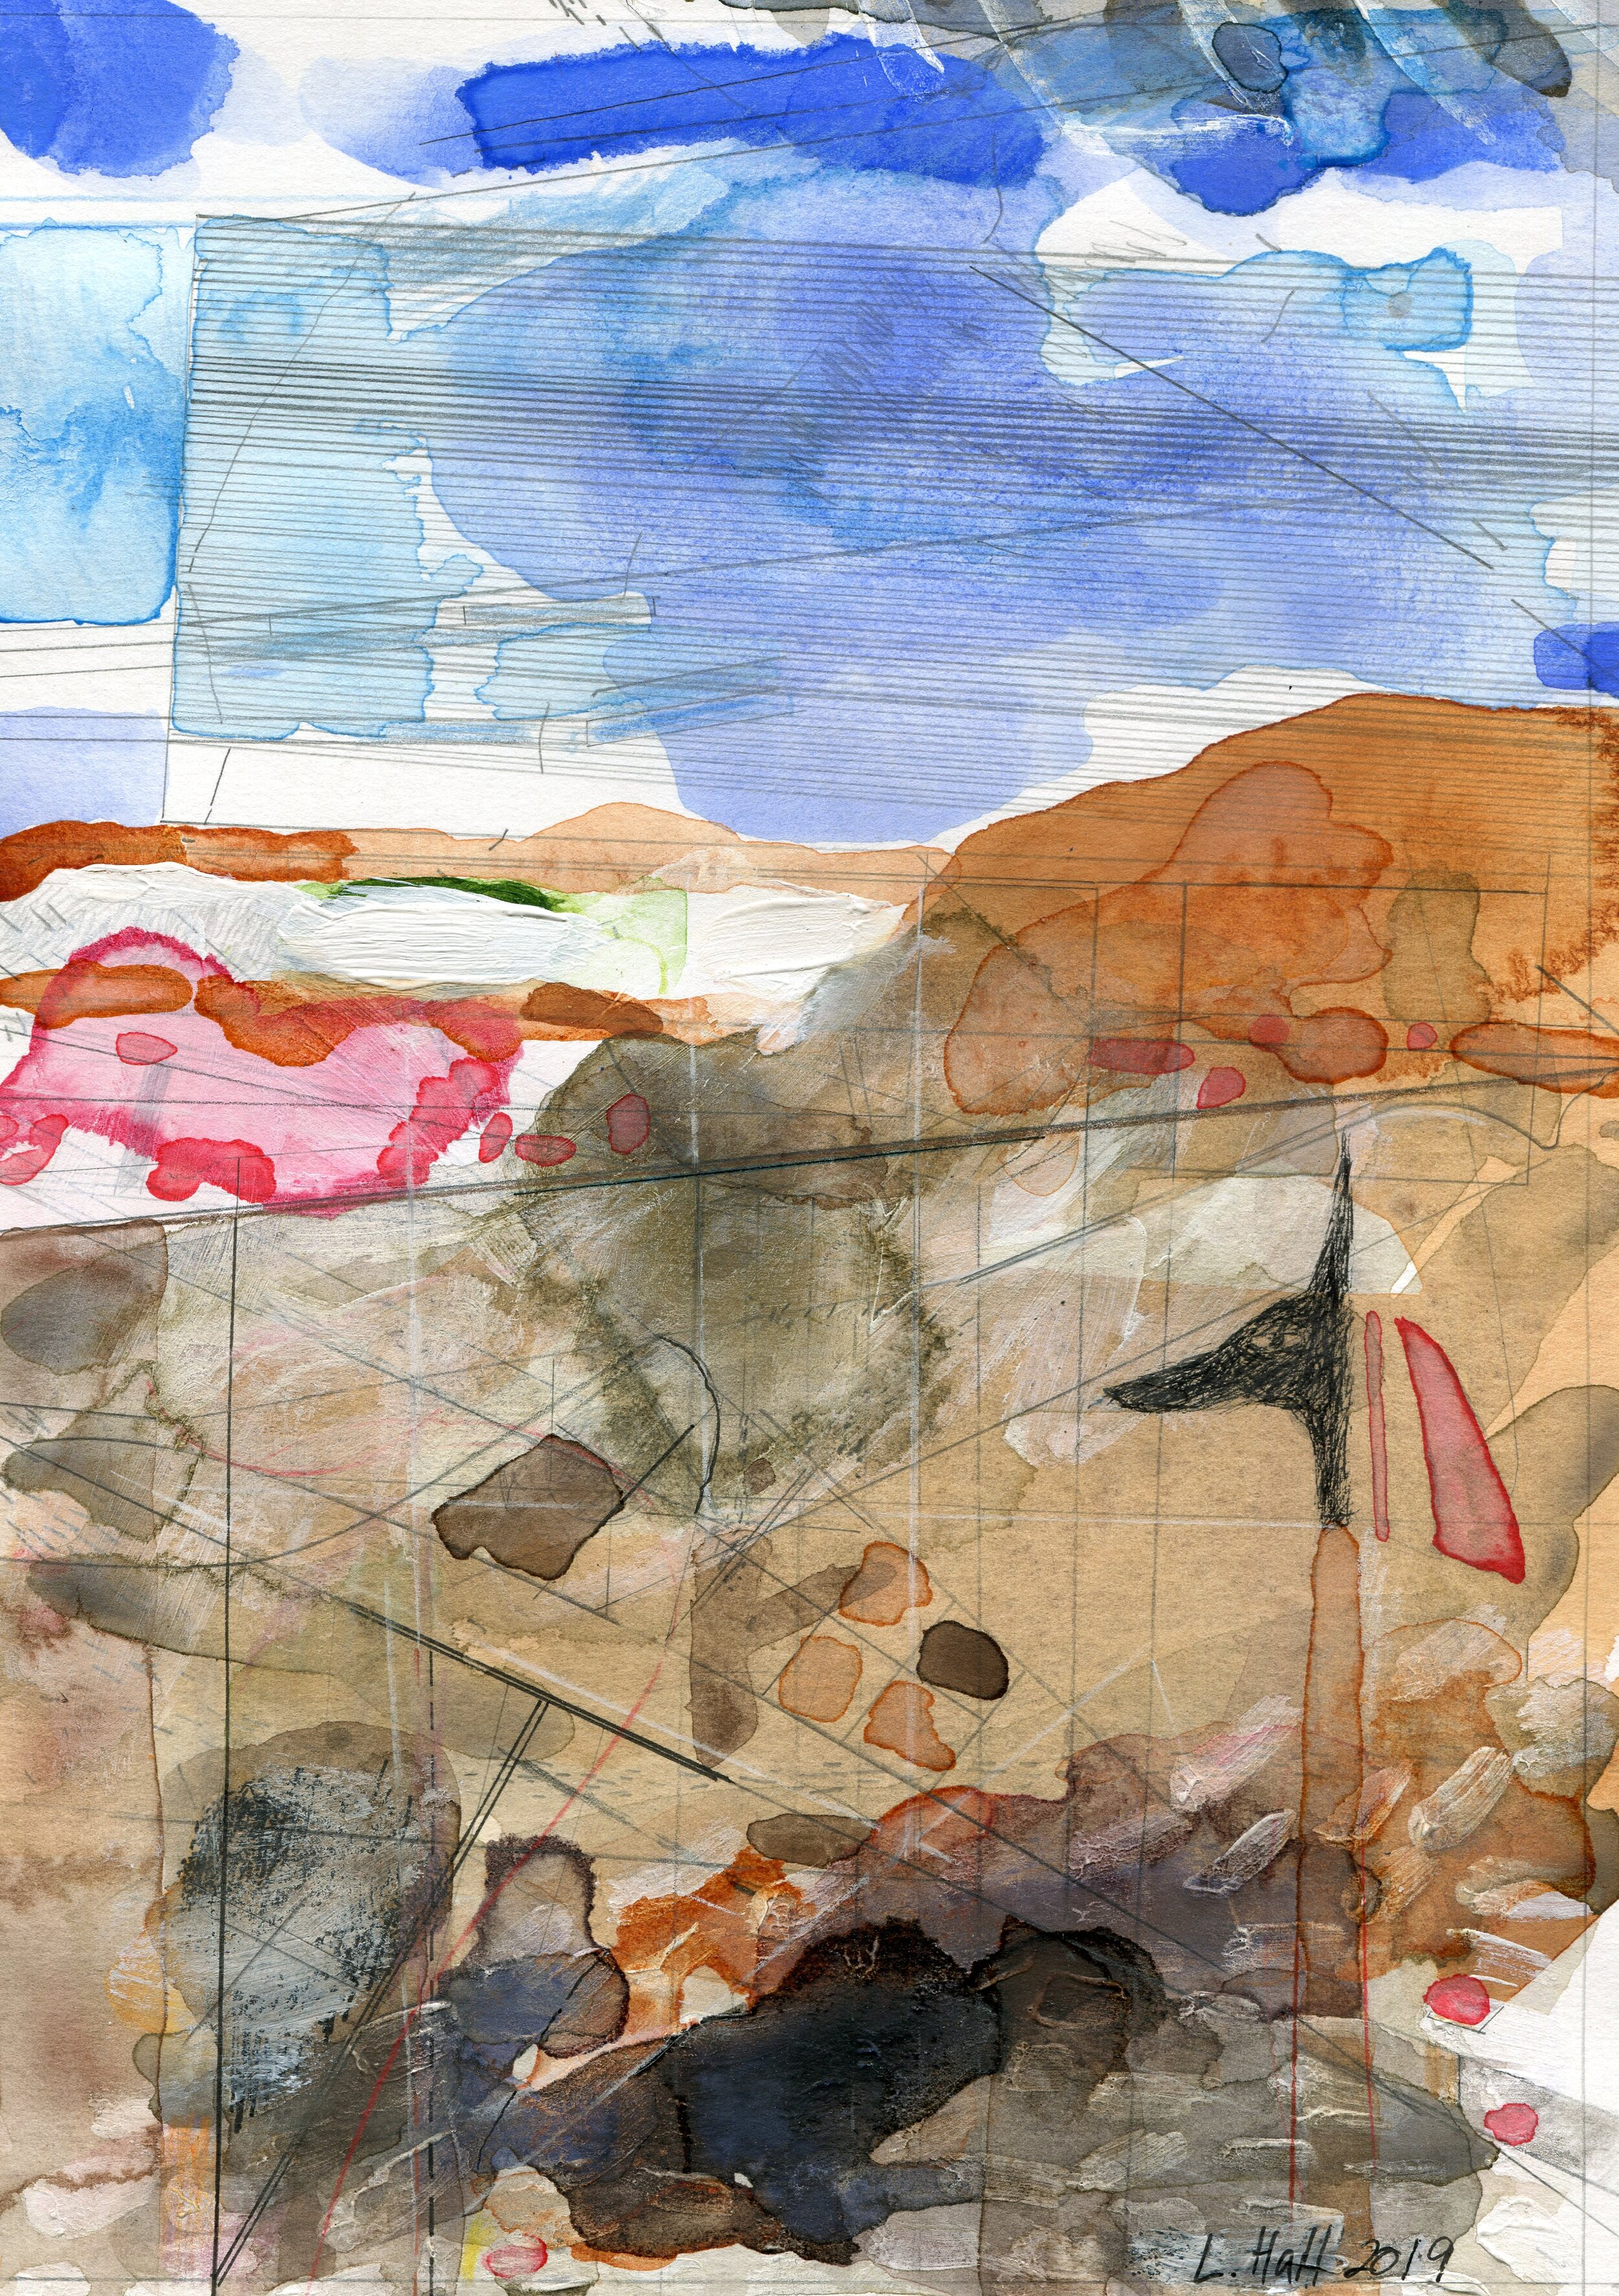 66a  Louise Hall  Transverse section of a landscape with anubis  mixed media on paper